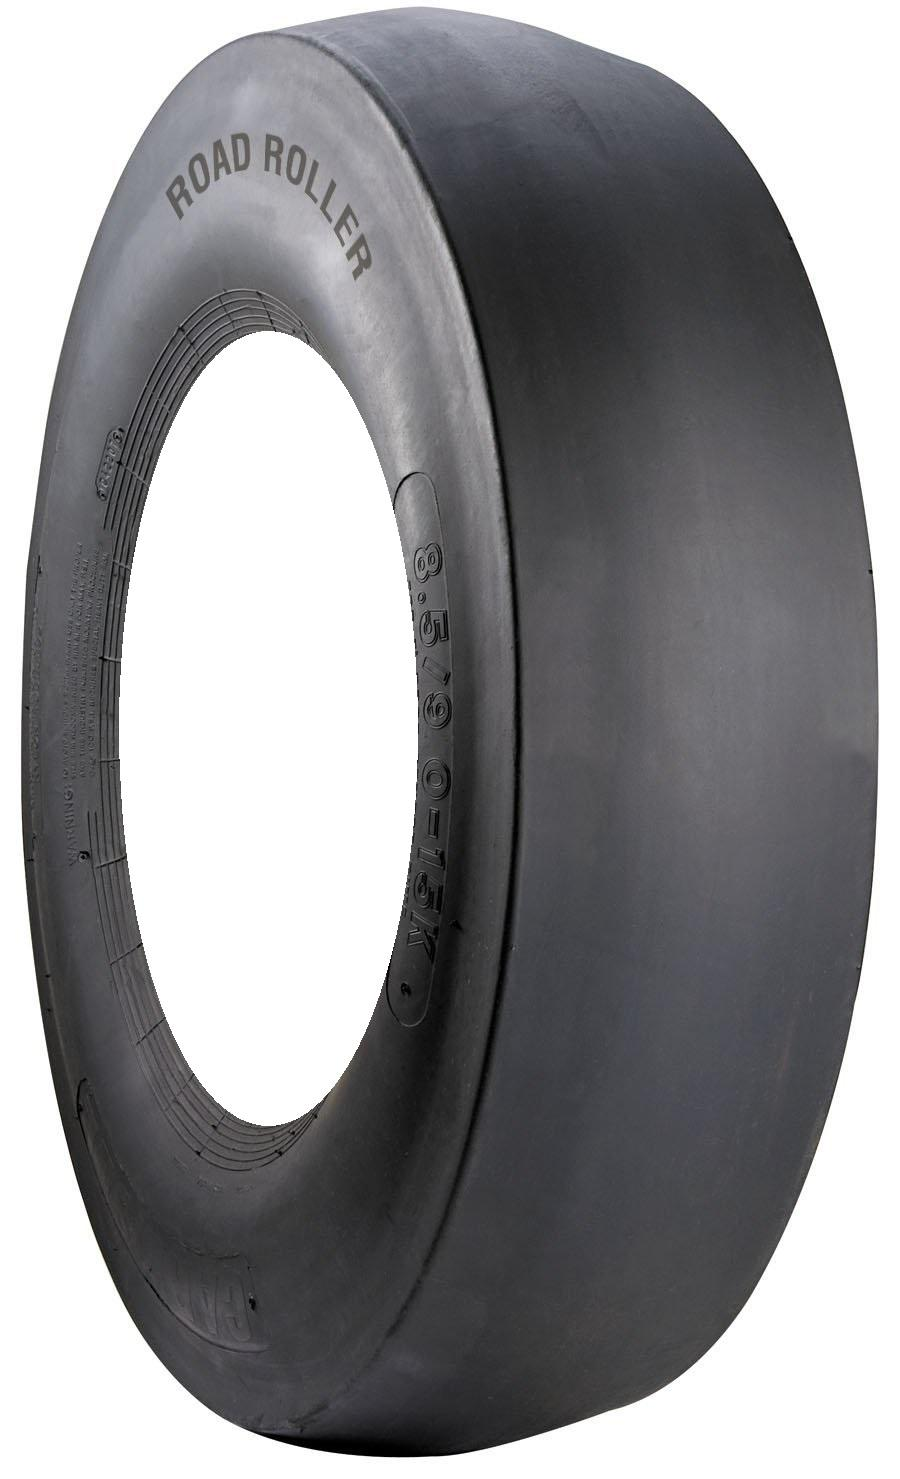 Carlisle Road Roller 7.50-15 14 Ply Multi - Purpose Tire